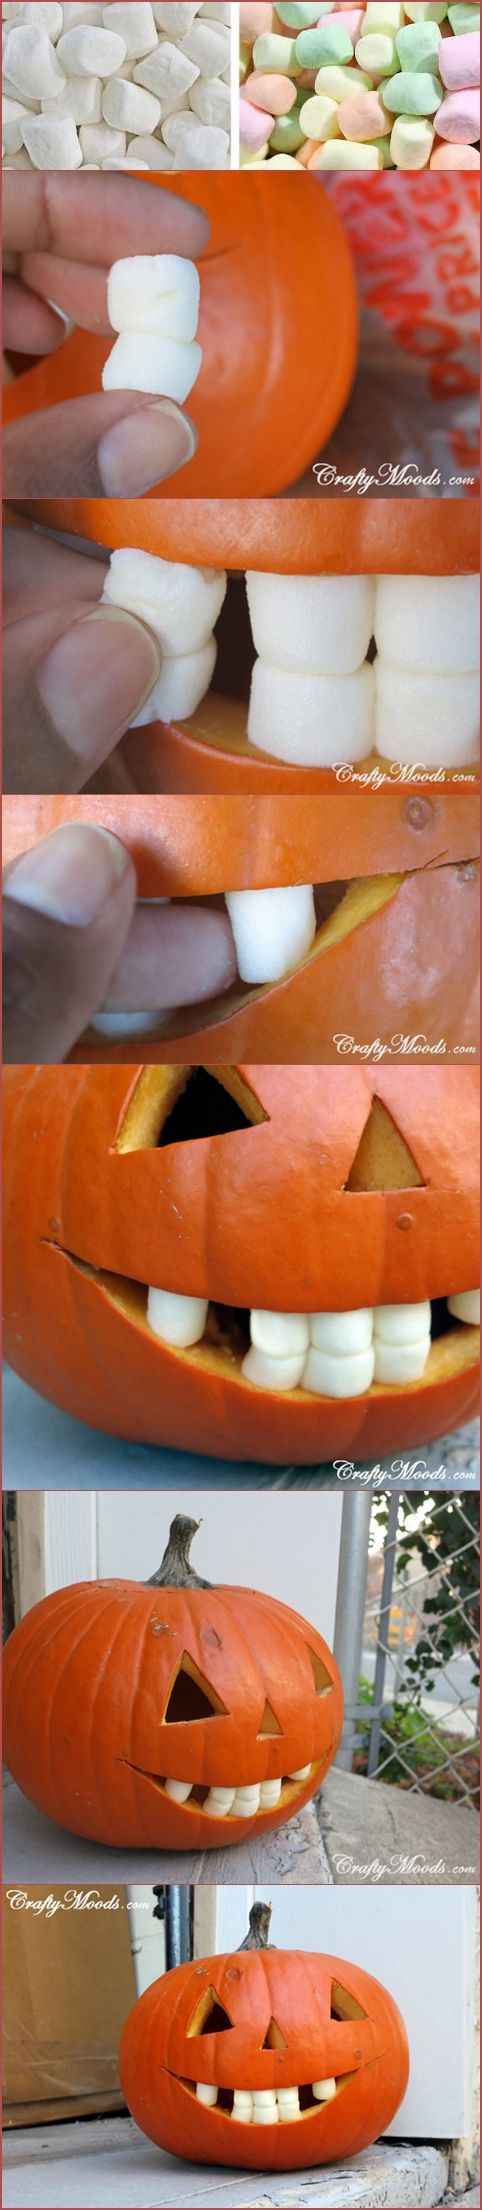 FUNNY Marshmallow Teeth Jacko-Lanterns.  This is so kooky but it really looks great!